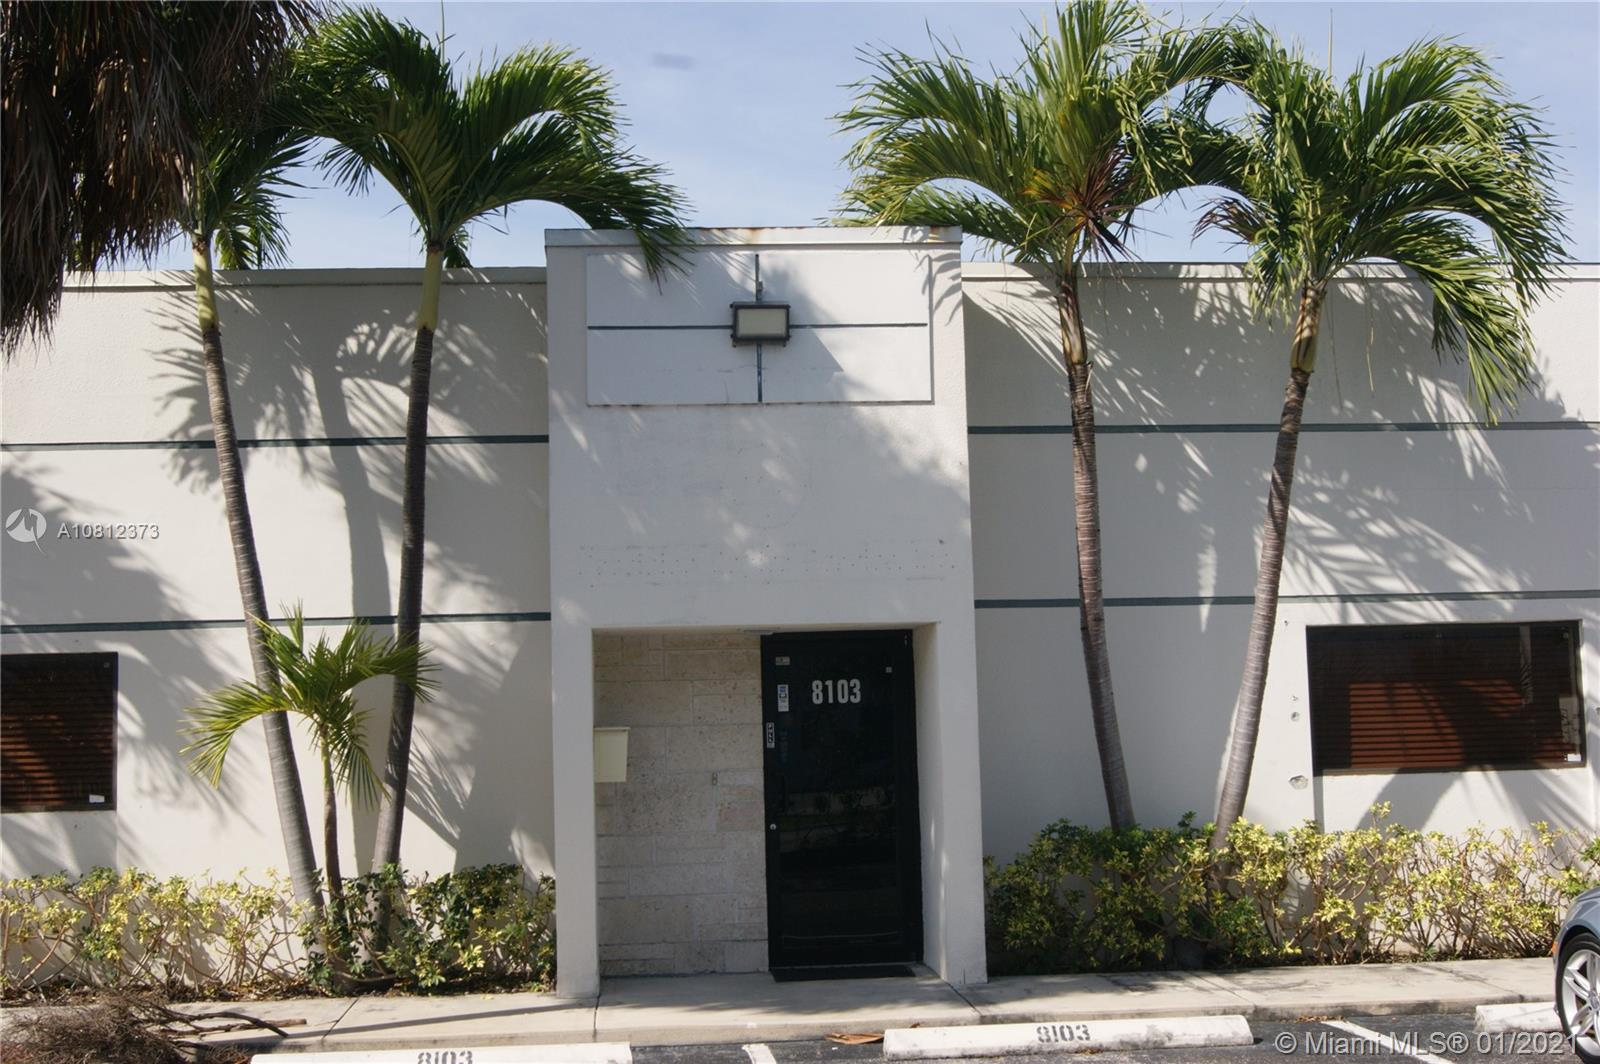 8103 NW 33rd St 8103, Doral, FL 33122